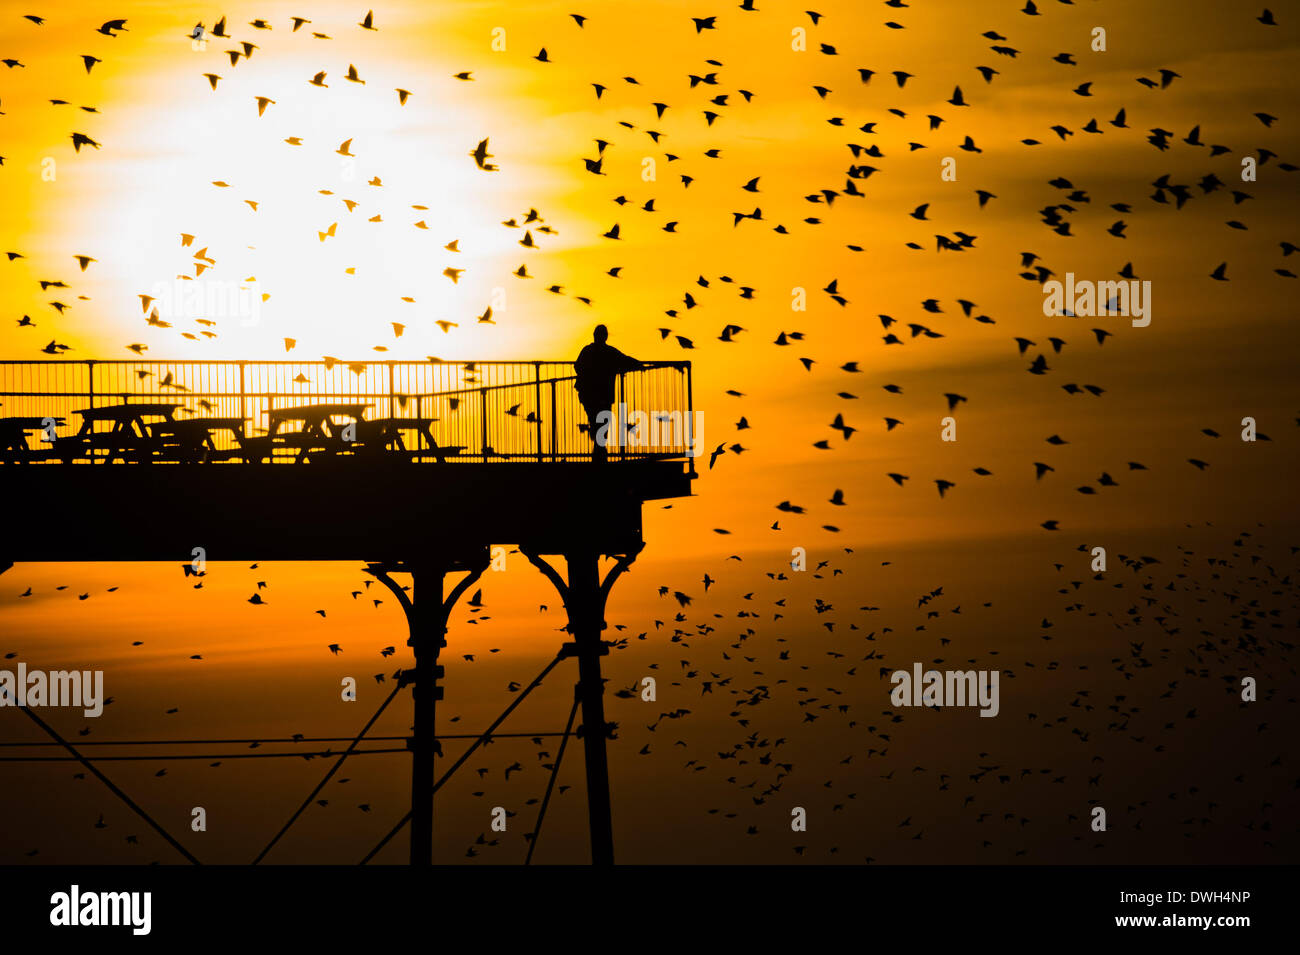 Aberystwyth, Wales, UK. 8th March 2014.   Flocks of starlings fly in to roost on the cast iron legs of the Victorian Stock Photo